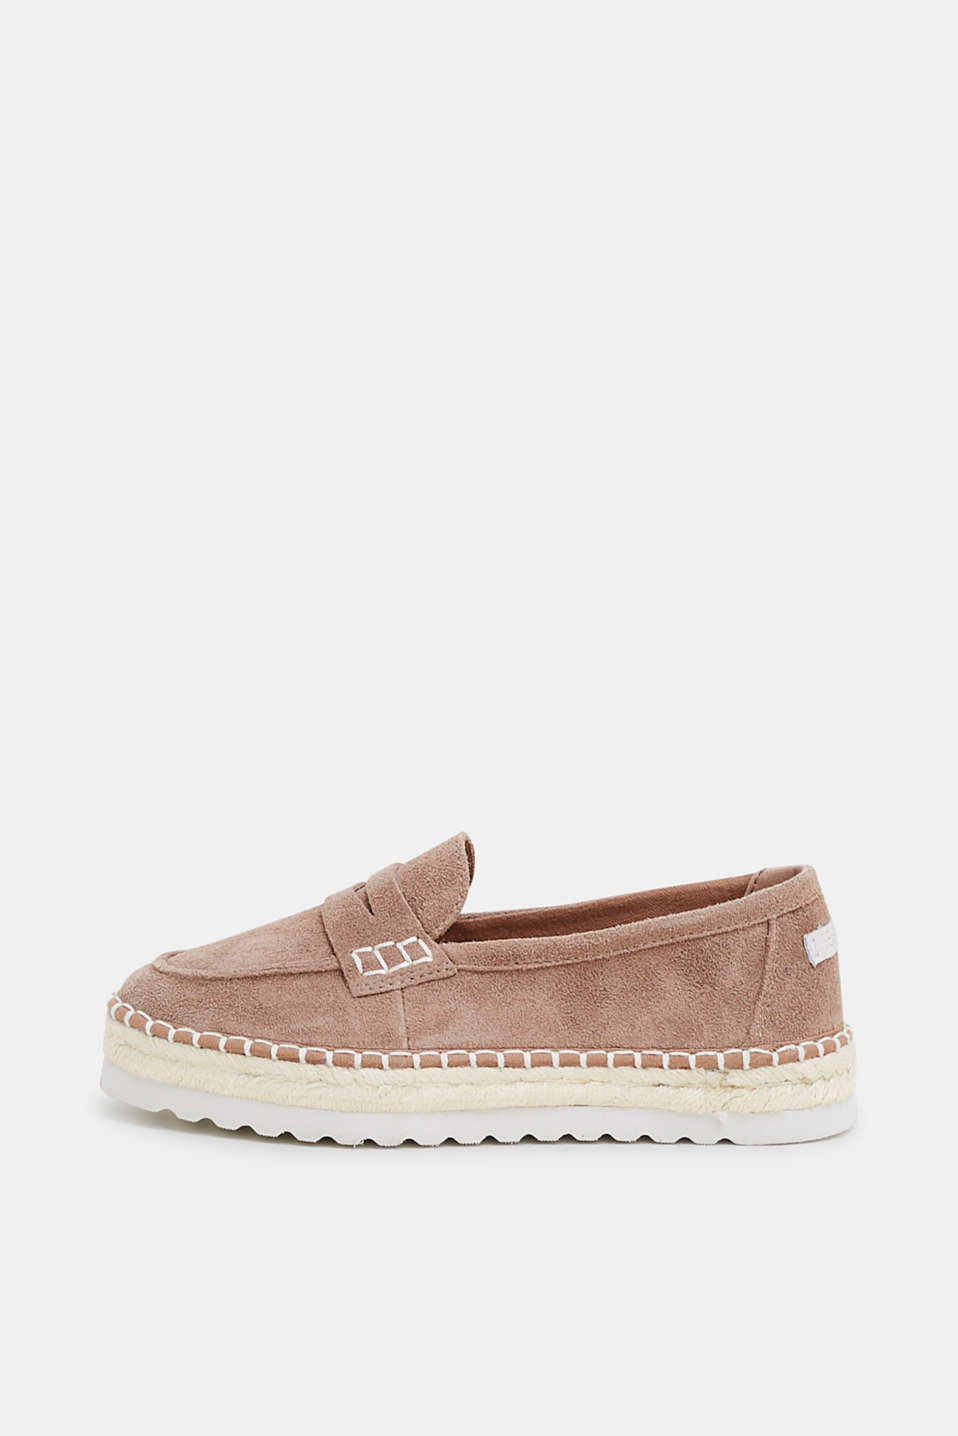 Esprit - Espadrille slip-ons in leather